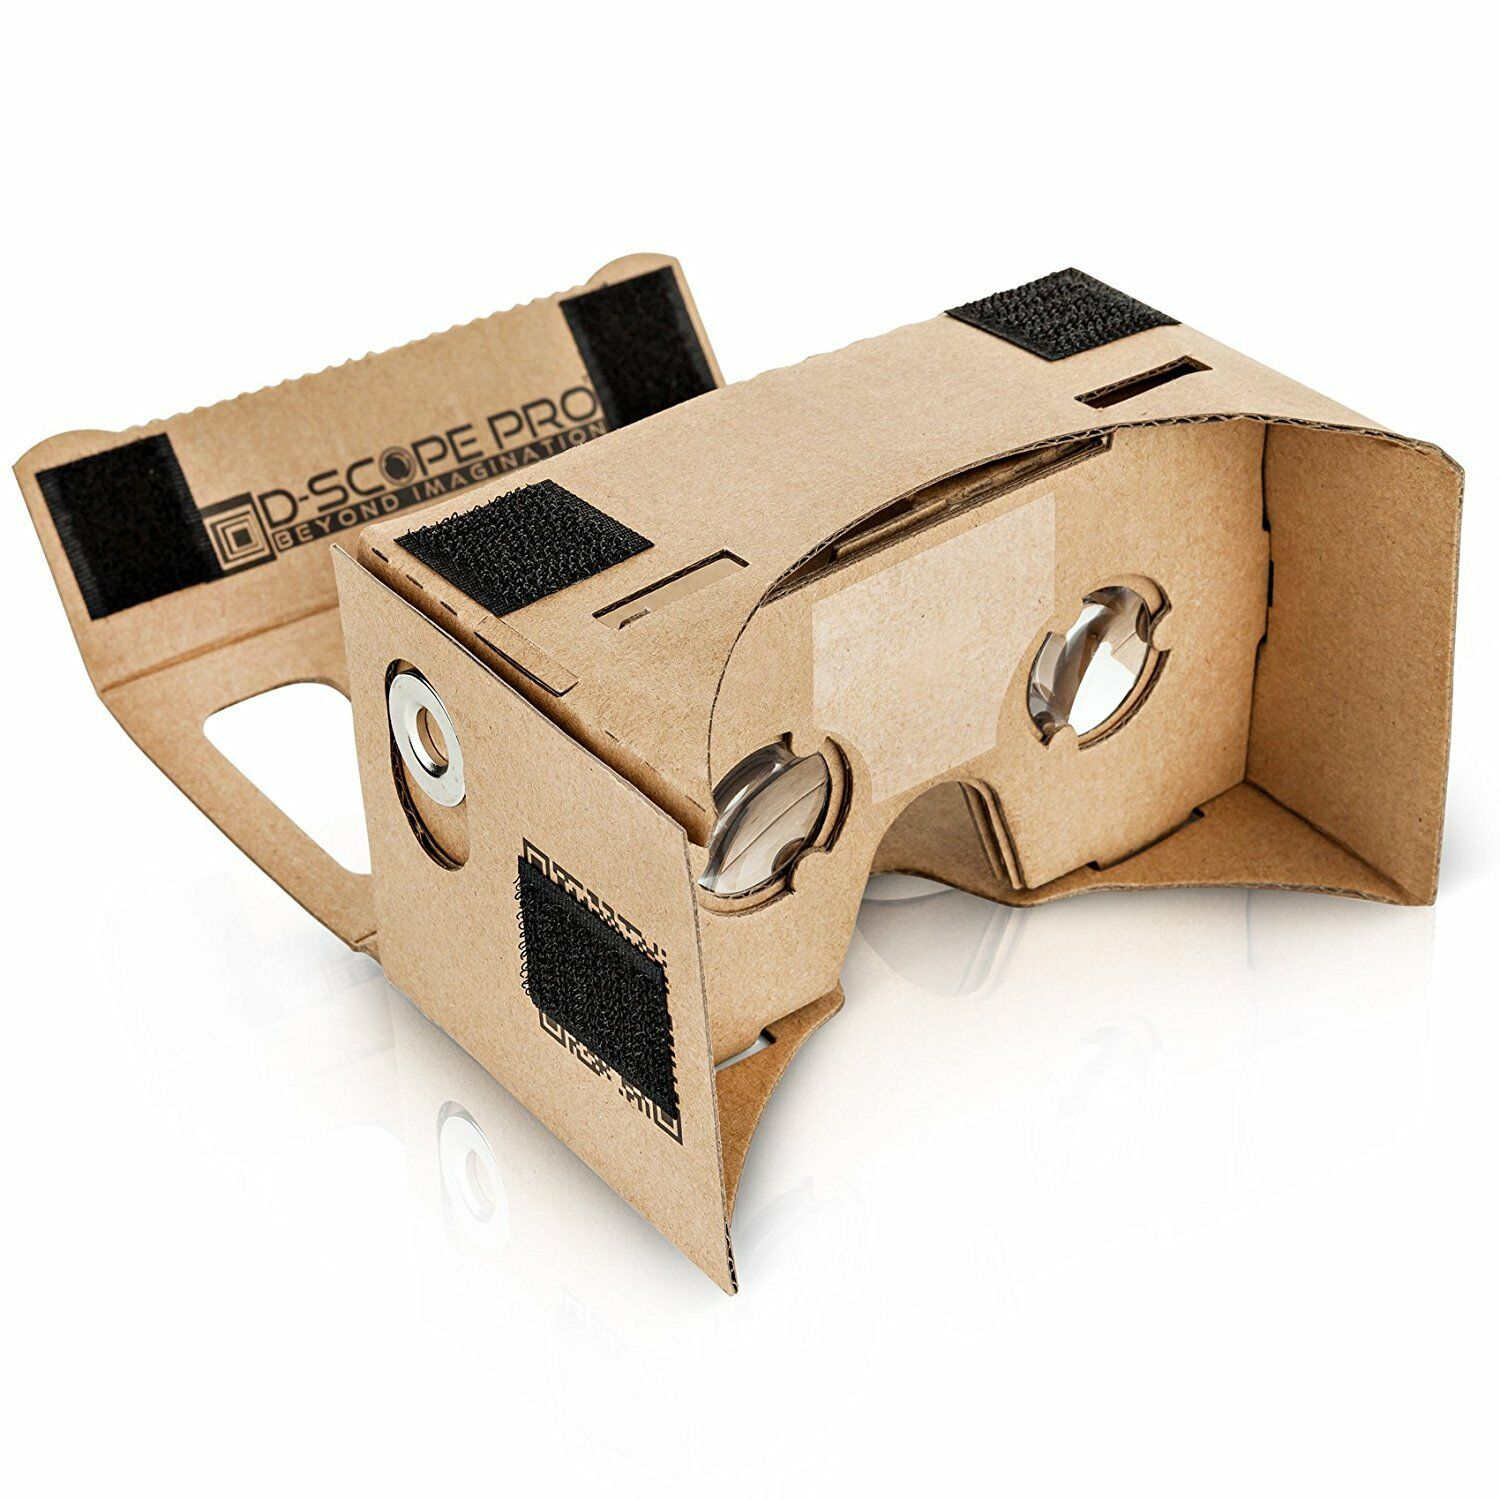 D-scope Pro Google Cardboard Kit with Straps 3D Virtual Reality VR